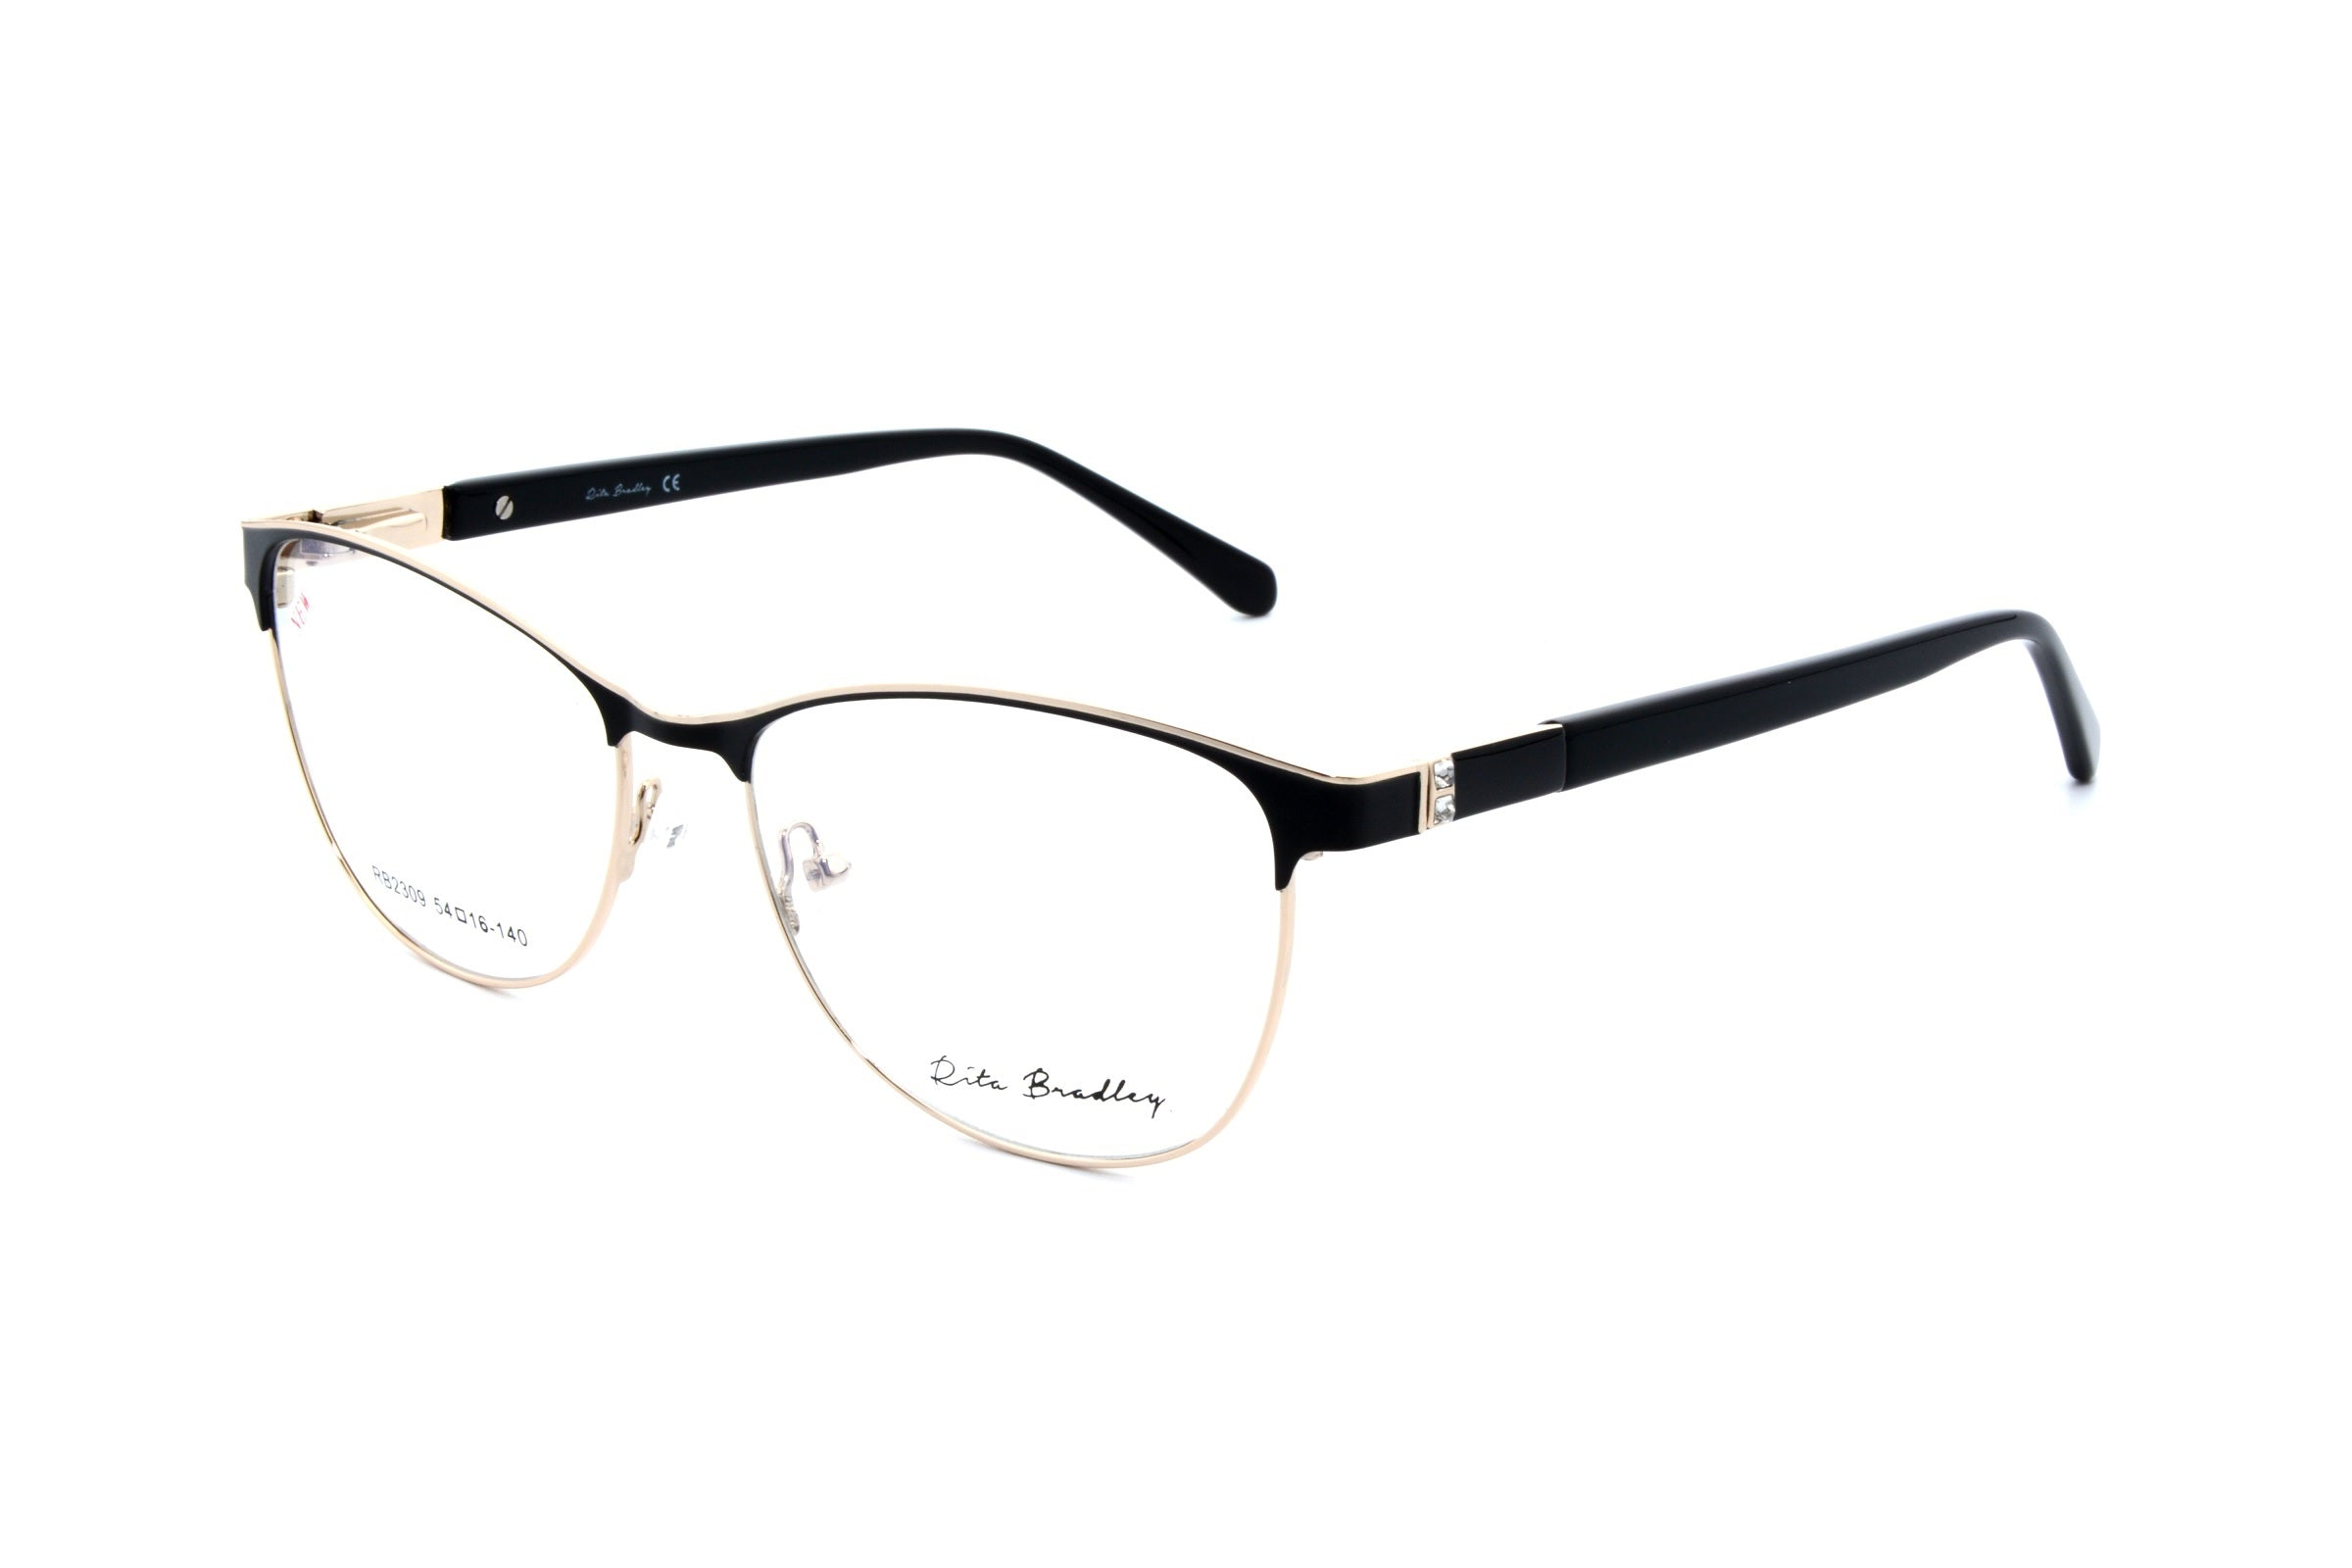 Rita Bradley eyewear 2309, C6 - Optics Trading